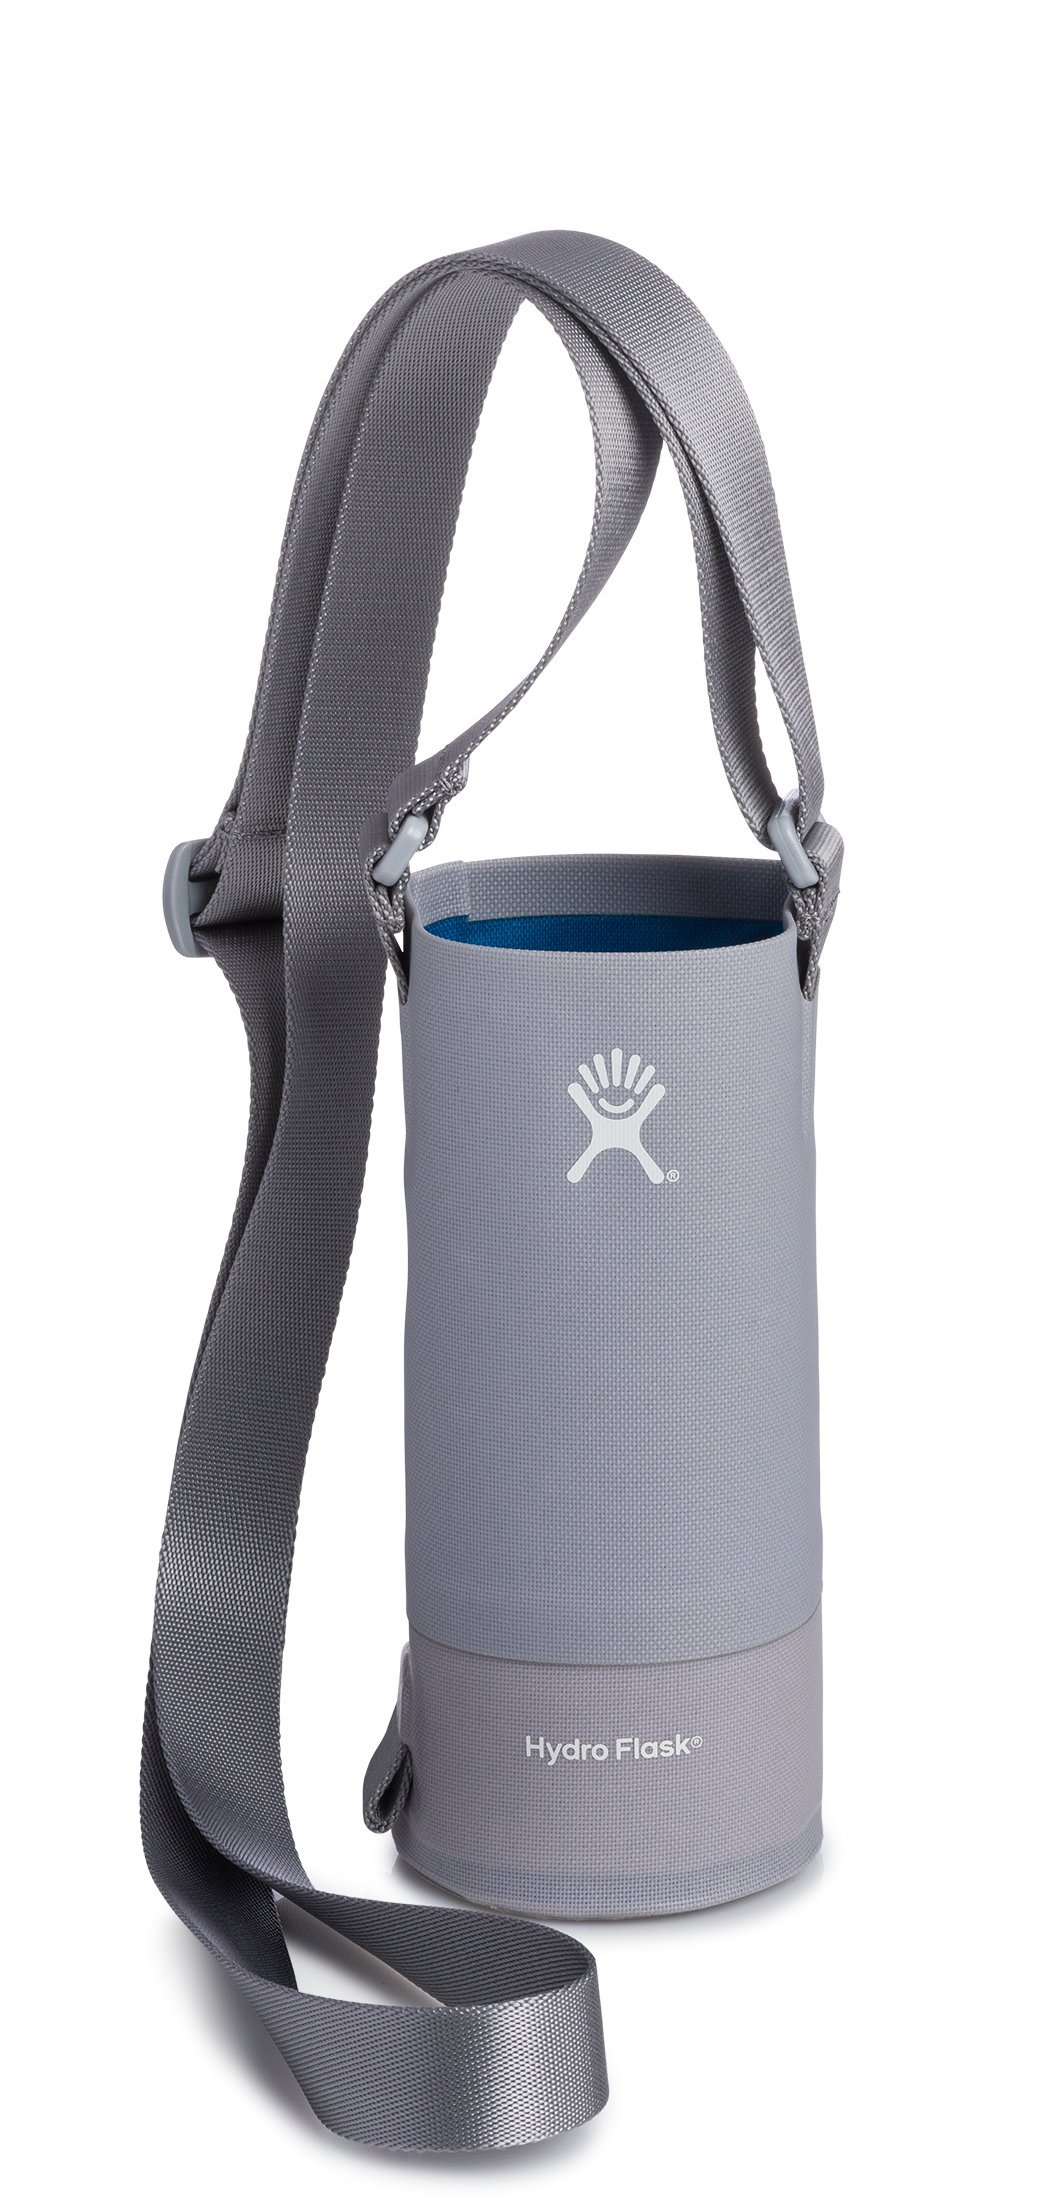 Hydro Flask Small Soft Sided Nylon Tag Along Water Bottle Sling with Pockets, Mist (Fits 12 oz, 18 oz, 21 oz, and 24 oz Bottles)